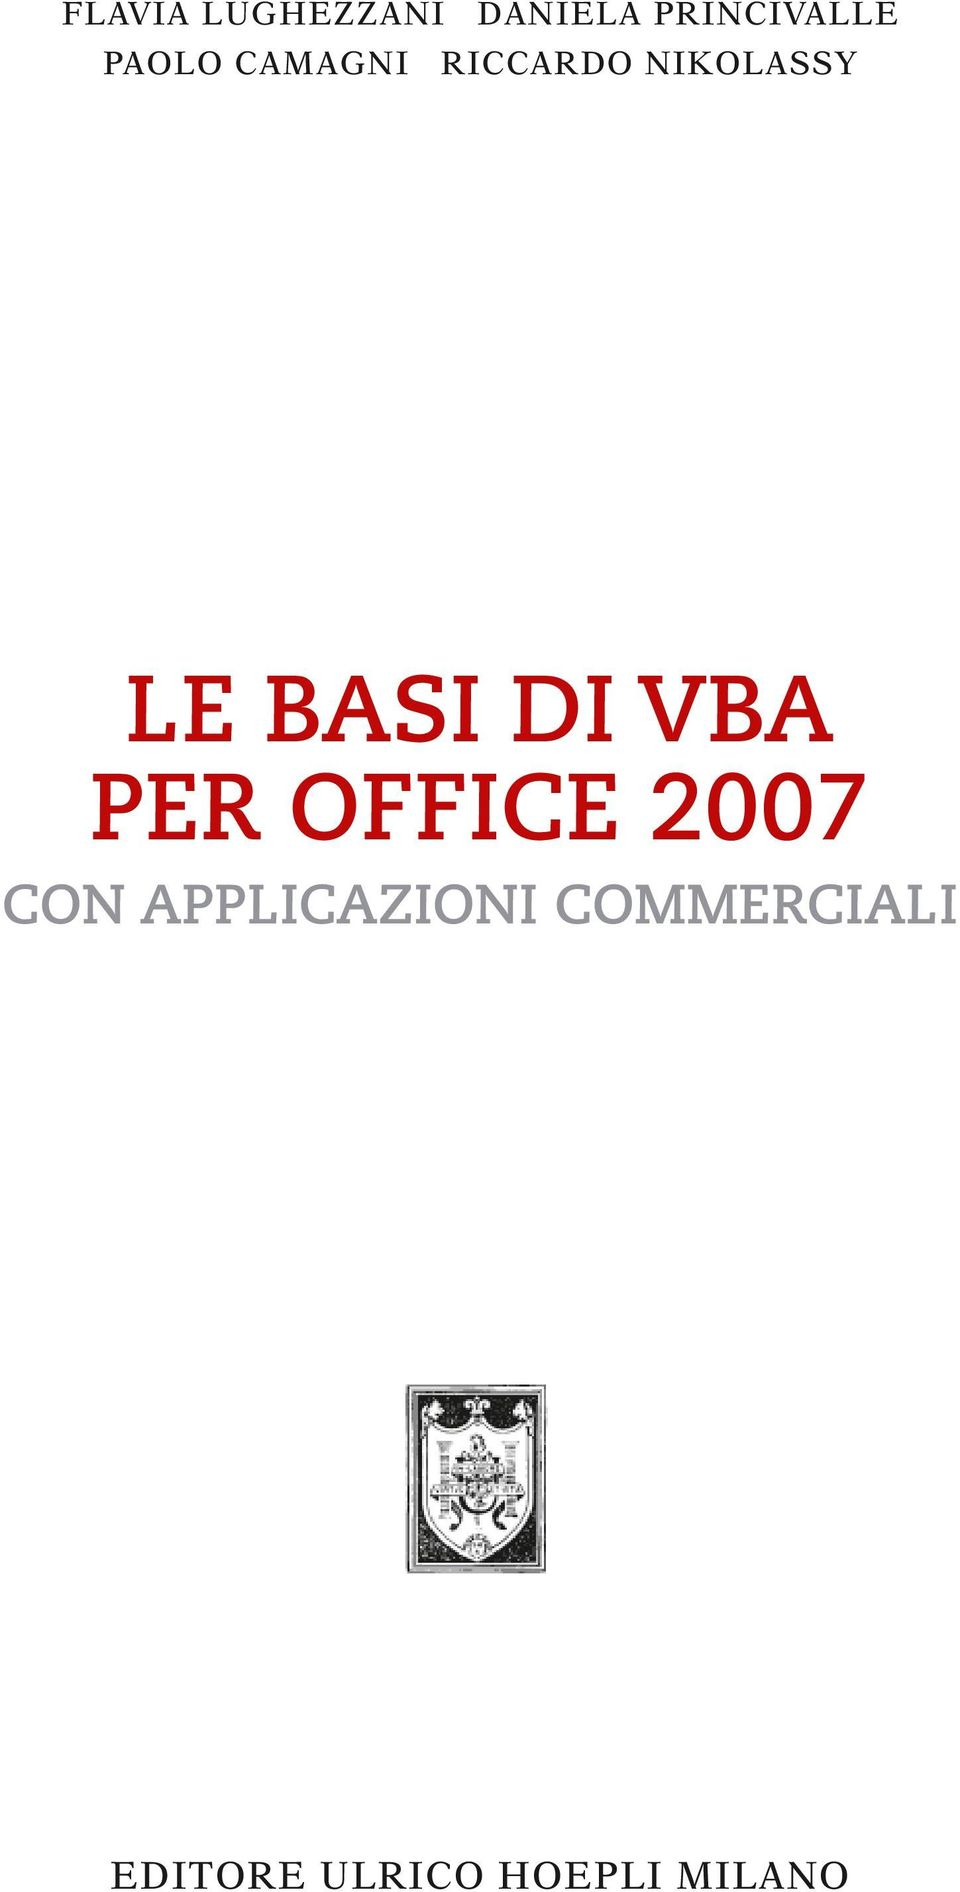 BASI DI VBA PER OFFICE 2007 CON